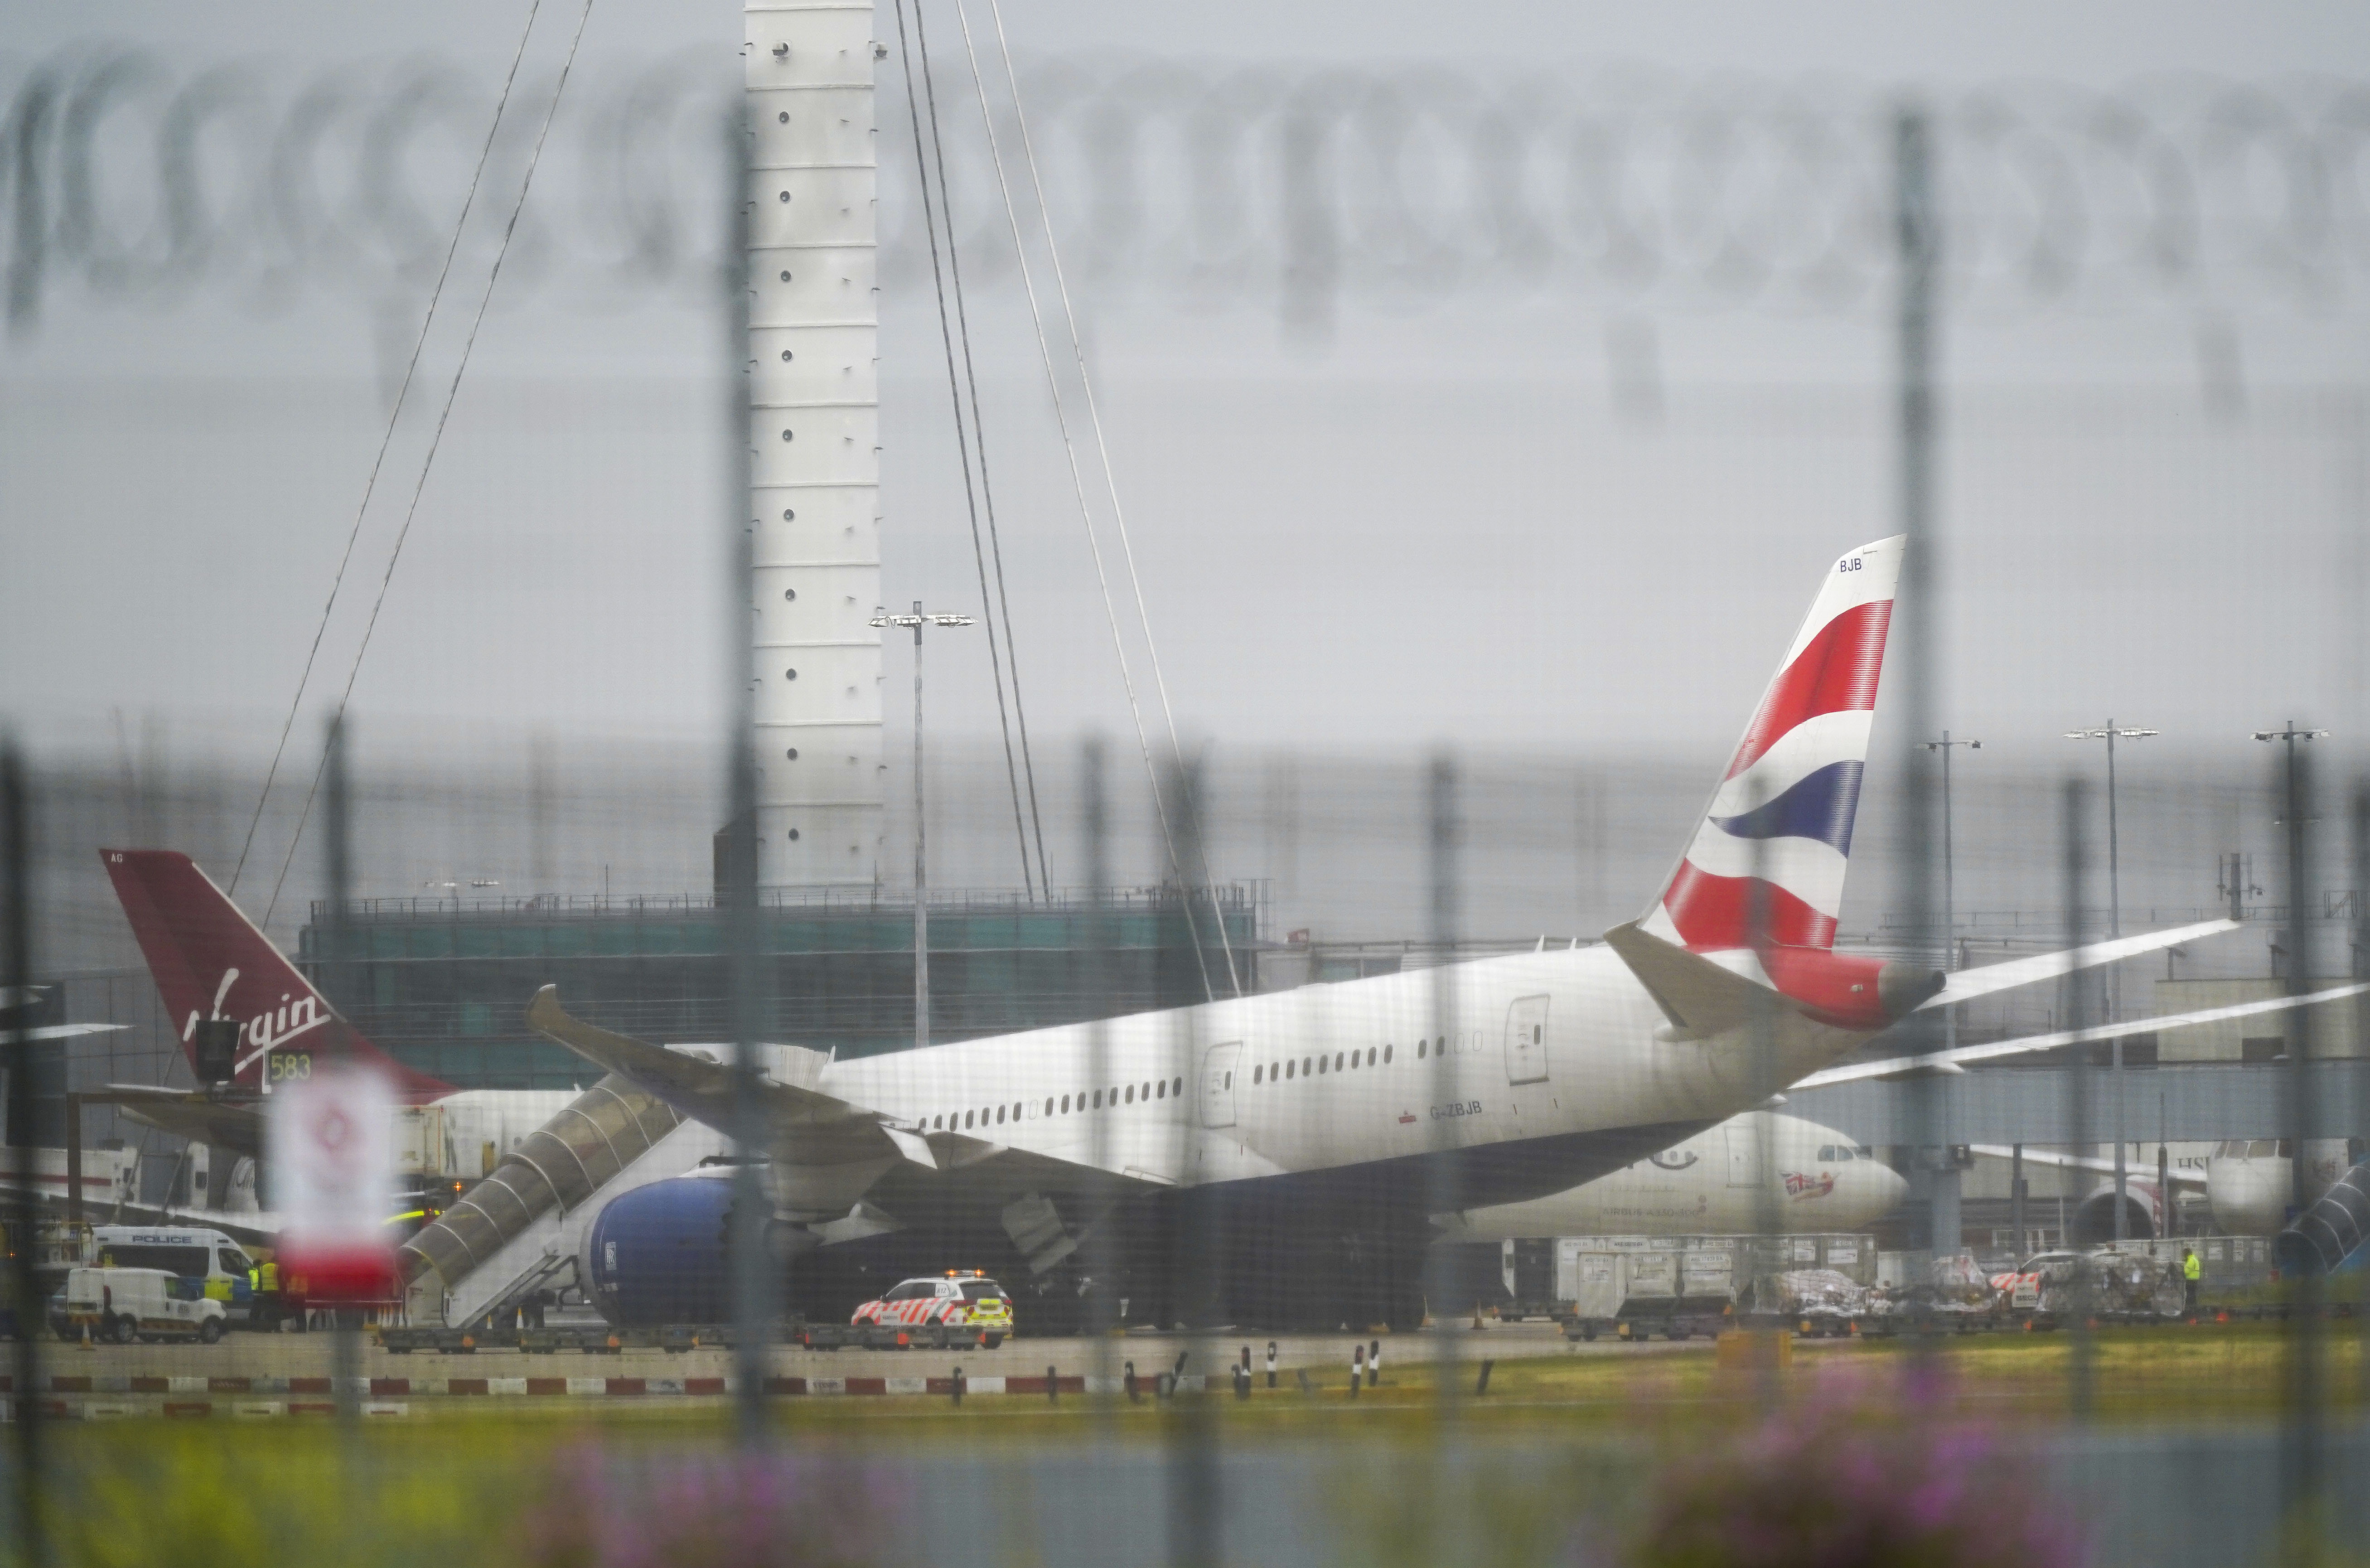 <p>A British Airways plane at Heathrow airport in west London which has been damaged after tipping on to its nose. Picture date: Friday June 18, 2021.</p>